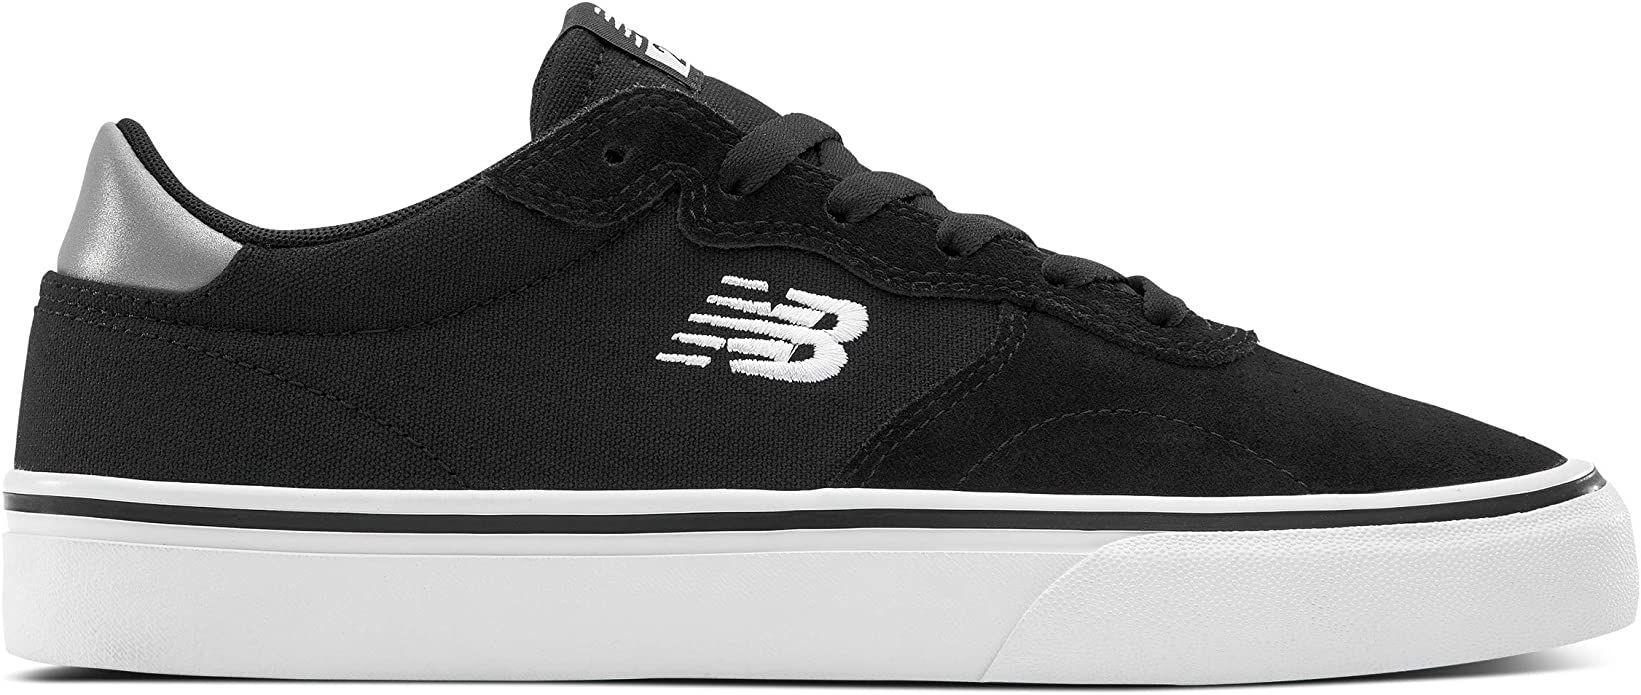 New Balance All Coasts AM232 Sneakers Skateschuhe Damen Herren Unisex Schwarz/Weiß